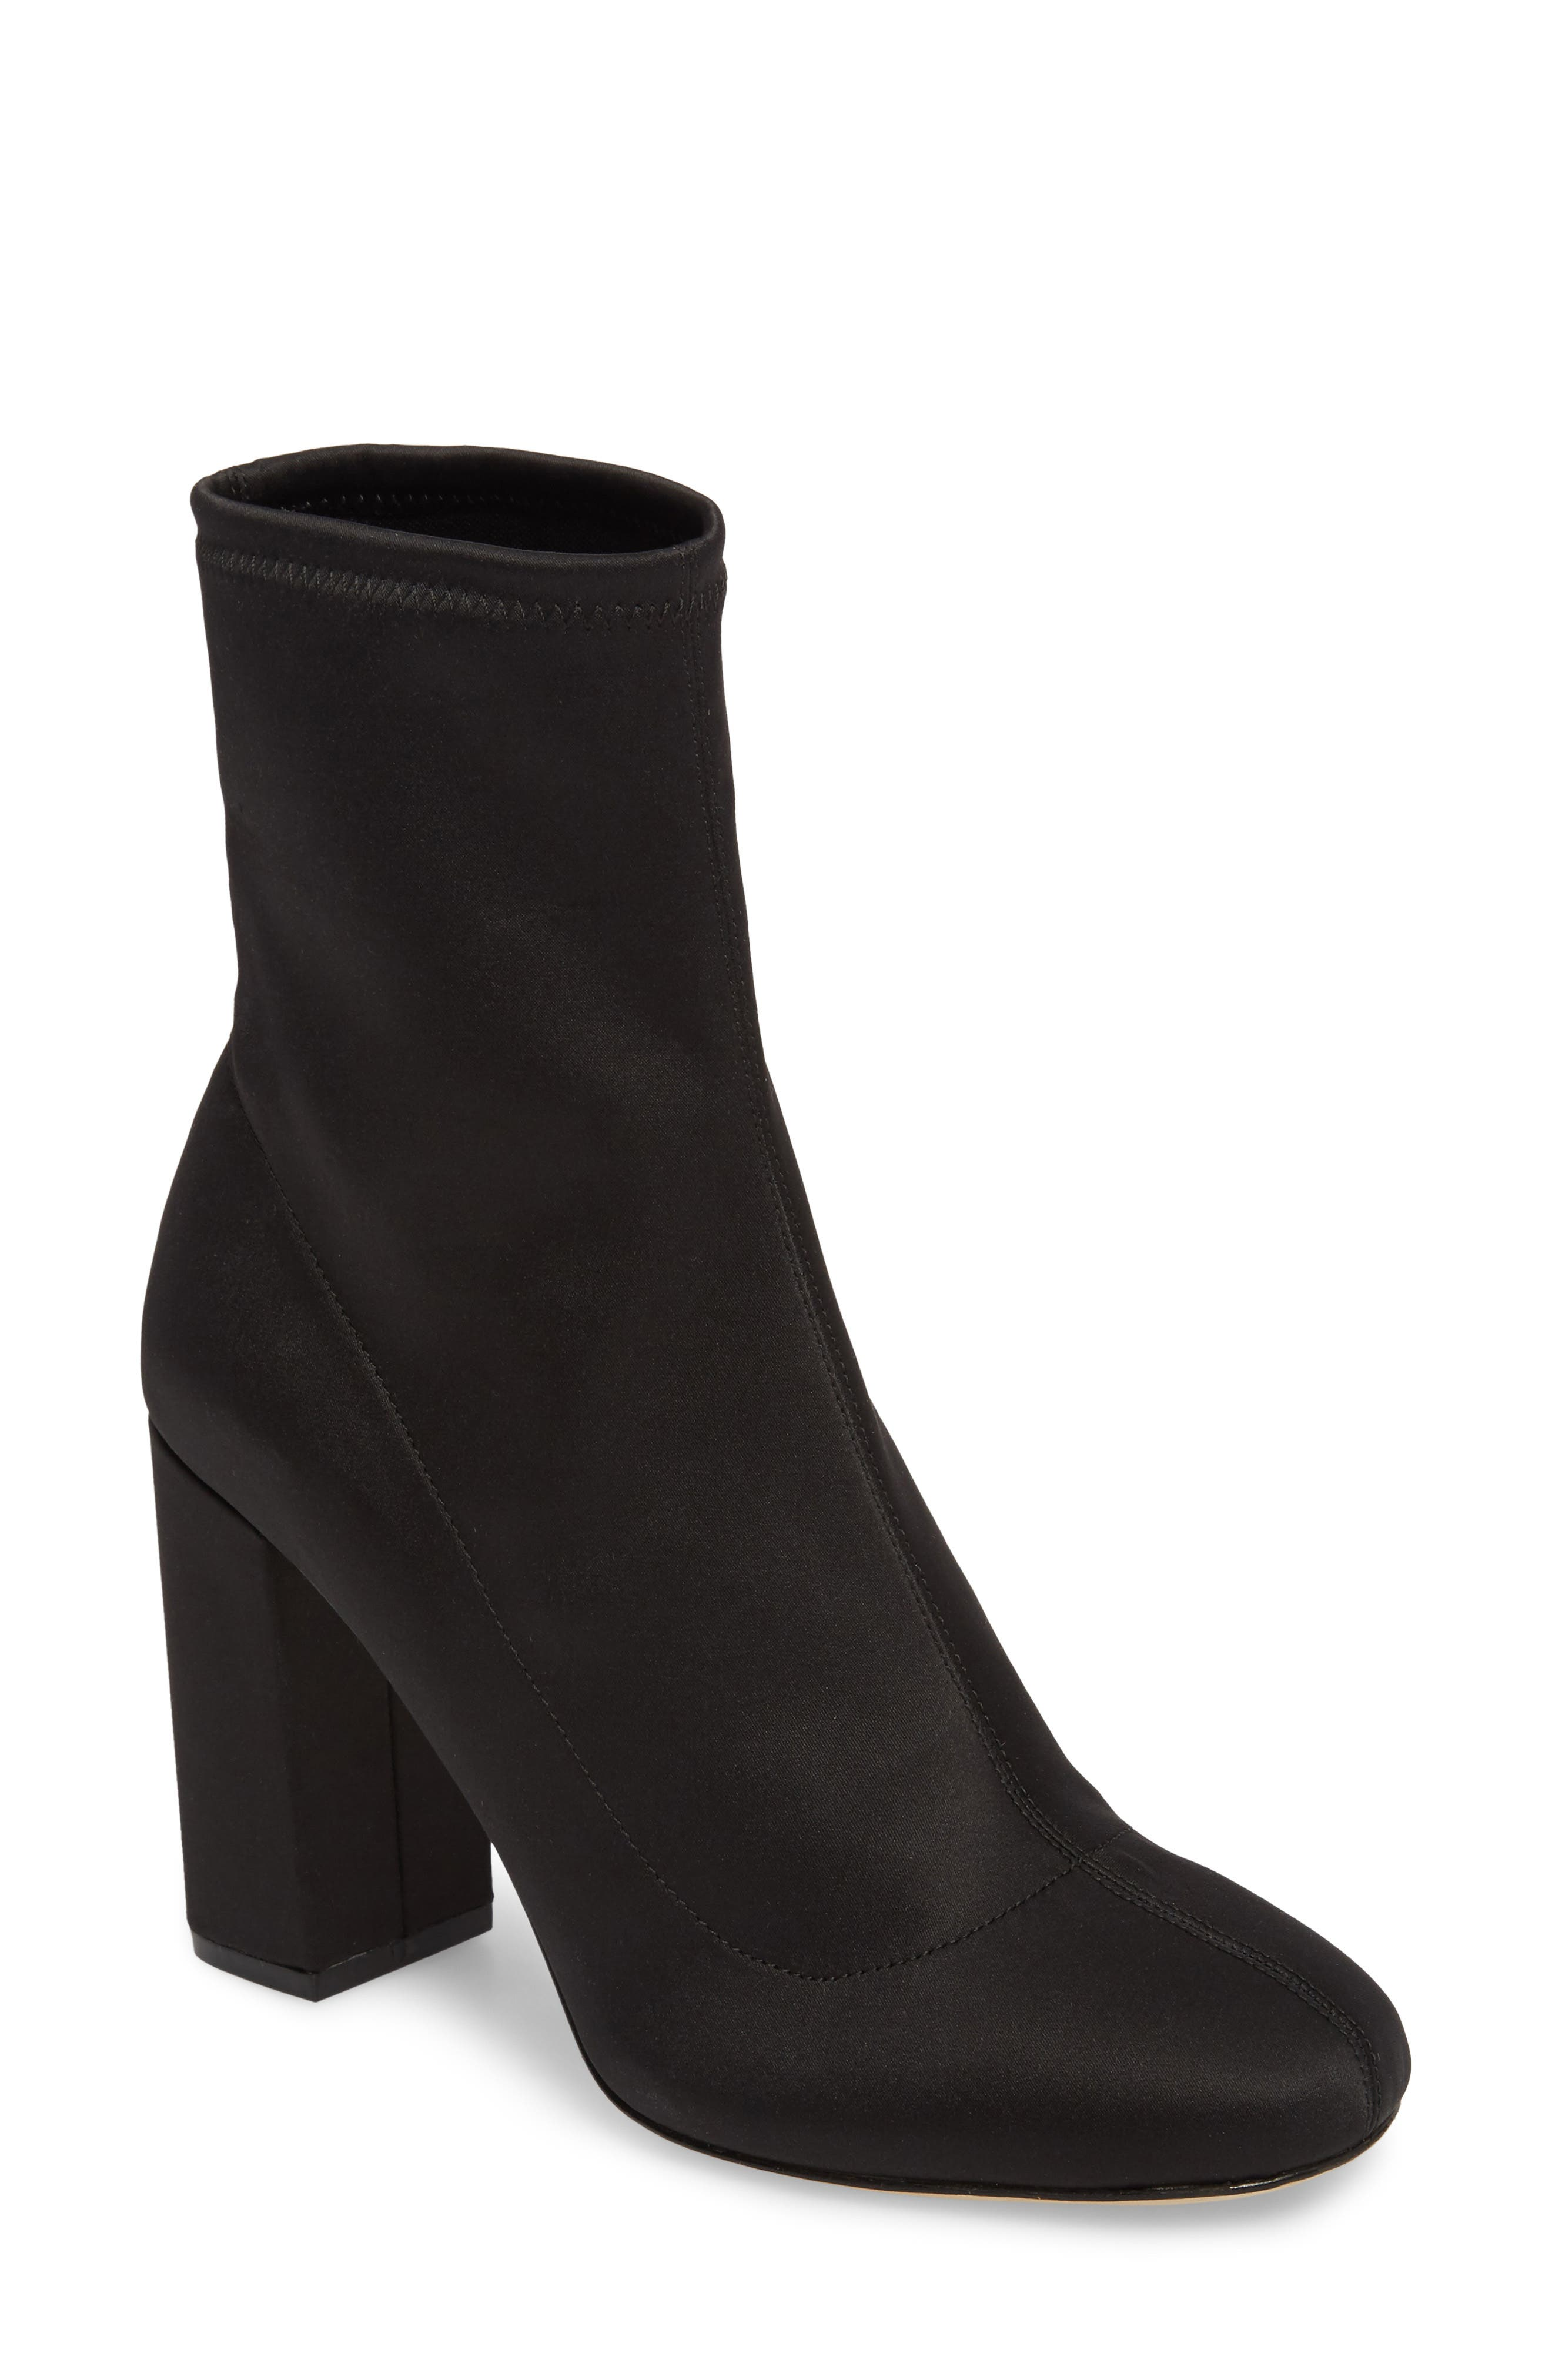 Alternate Image 1 Selected - Joie Sabriyya Sock Satin Bootie (Women)